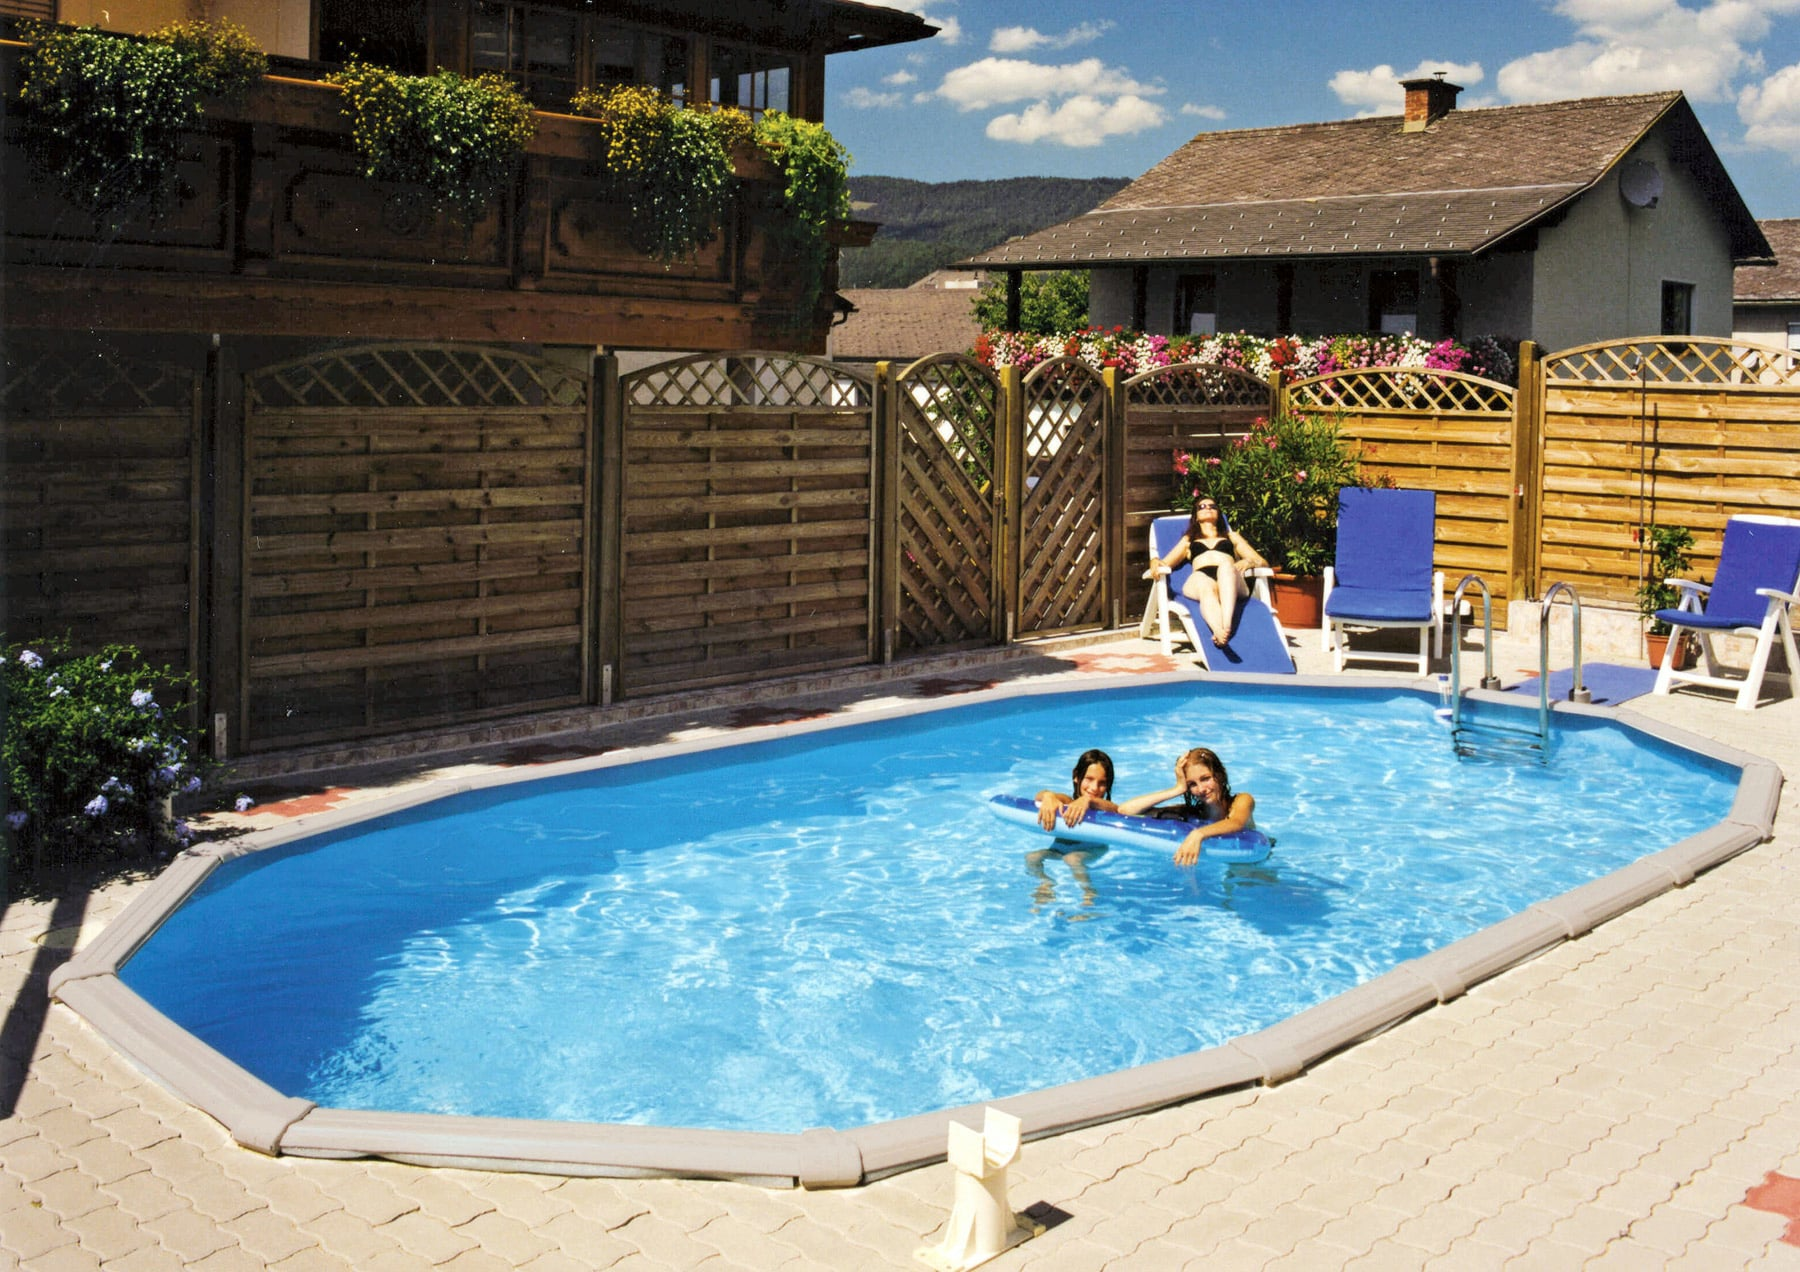 Solarplane Für Pool Oval Steinbach Grande Pool Set Oval 549 X 366 X 135 Cm